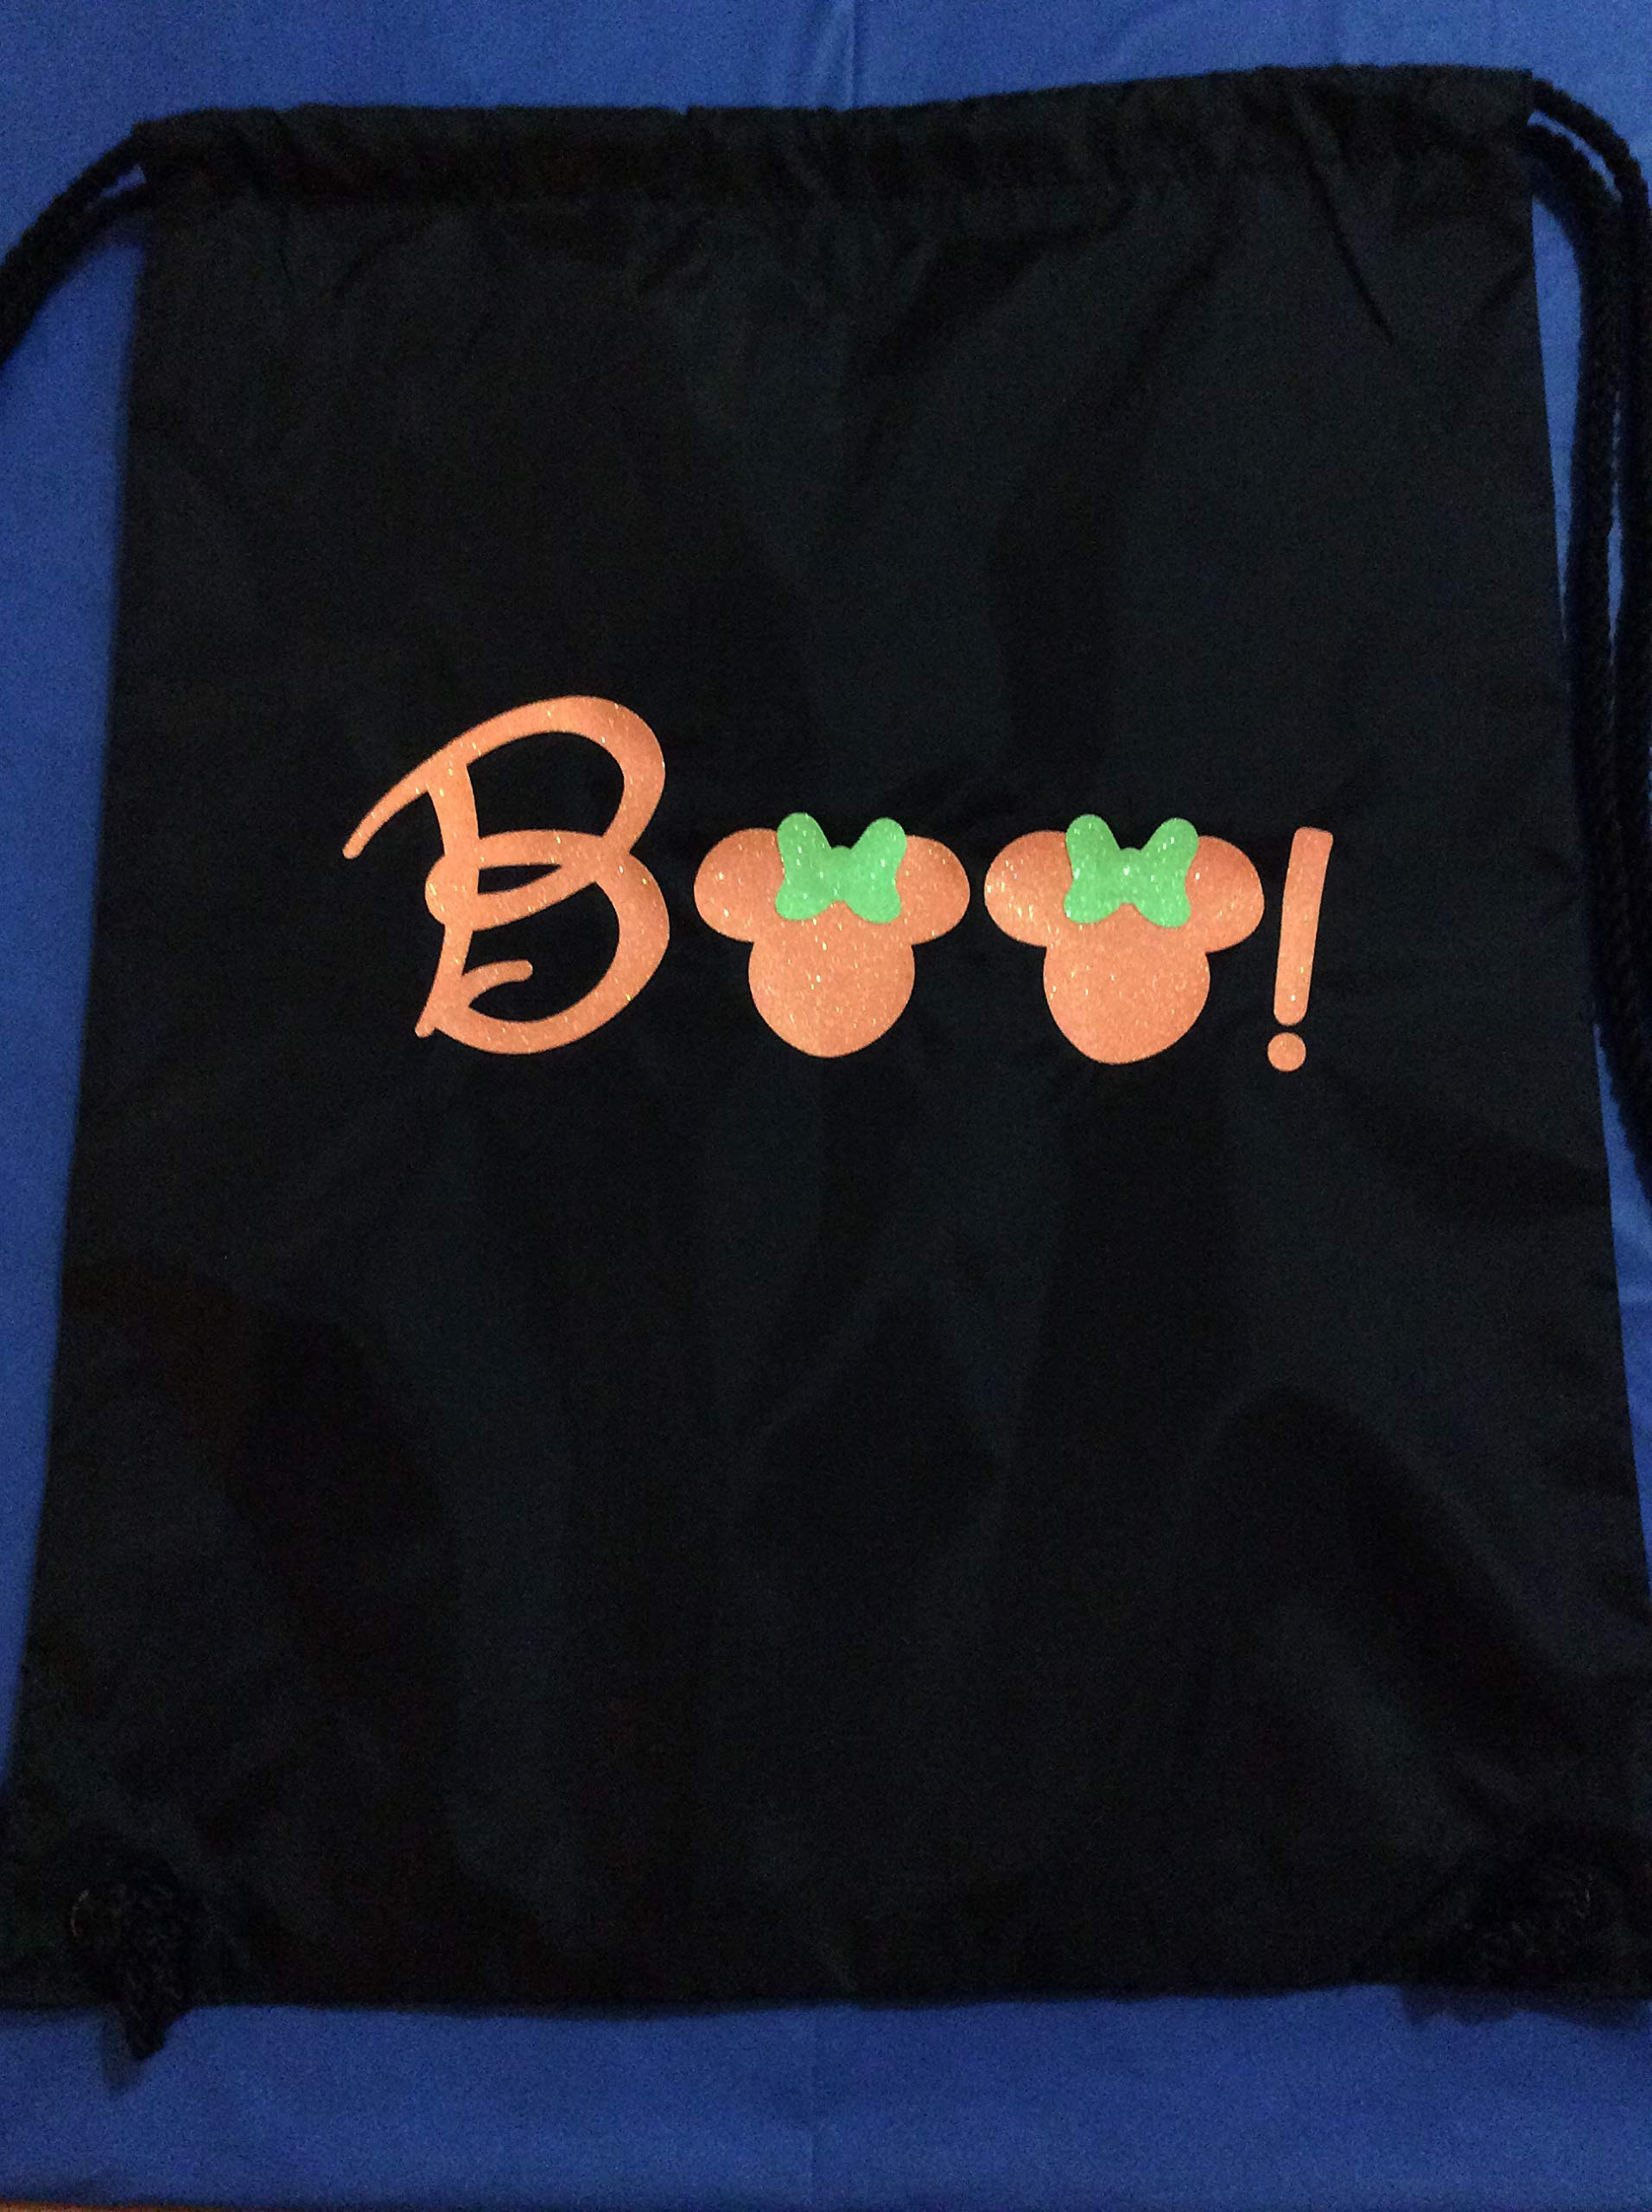 Handmade Personalized Disney drawstring backpack with Boo/Trick or Treat Bag/Mickey's Not so Scary Halloween